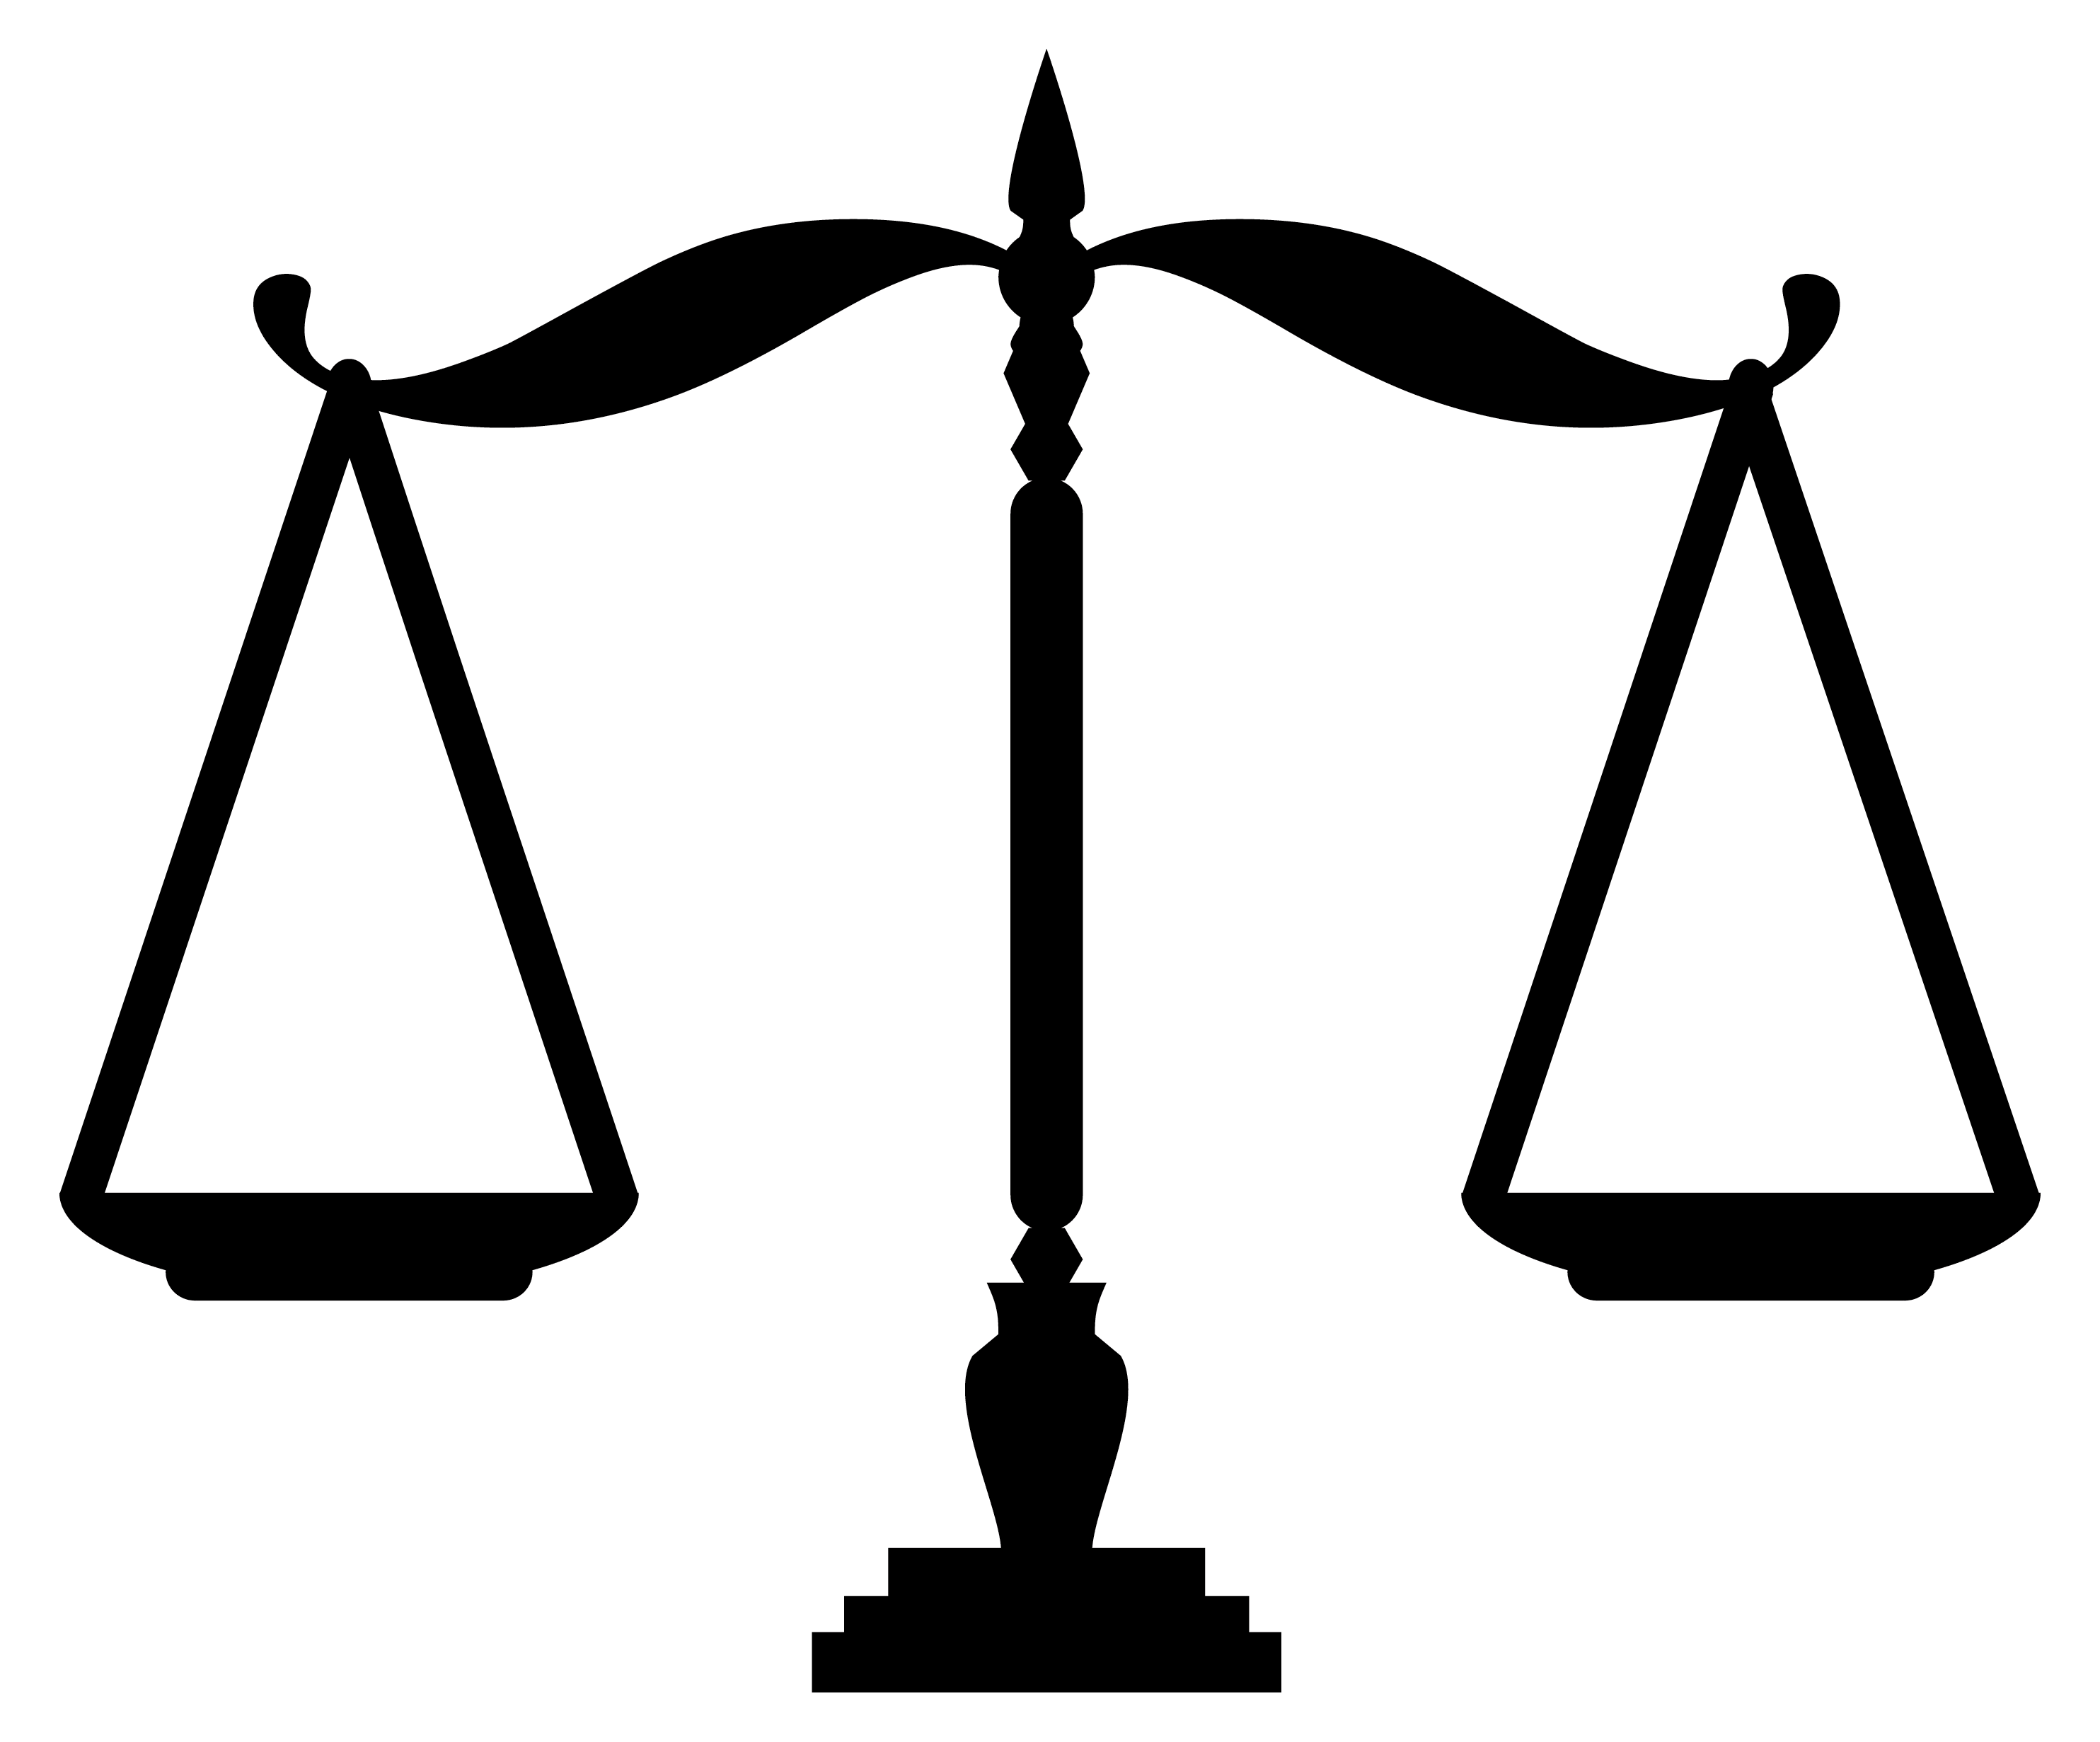 Measuring Scales Justice Royalty.